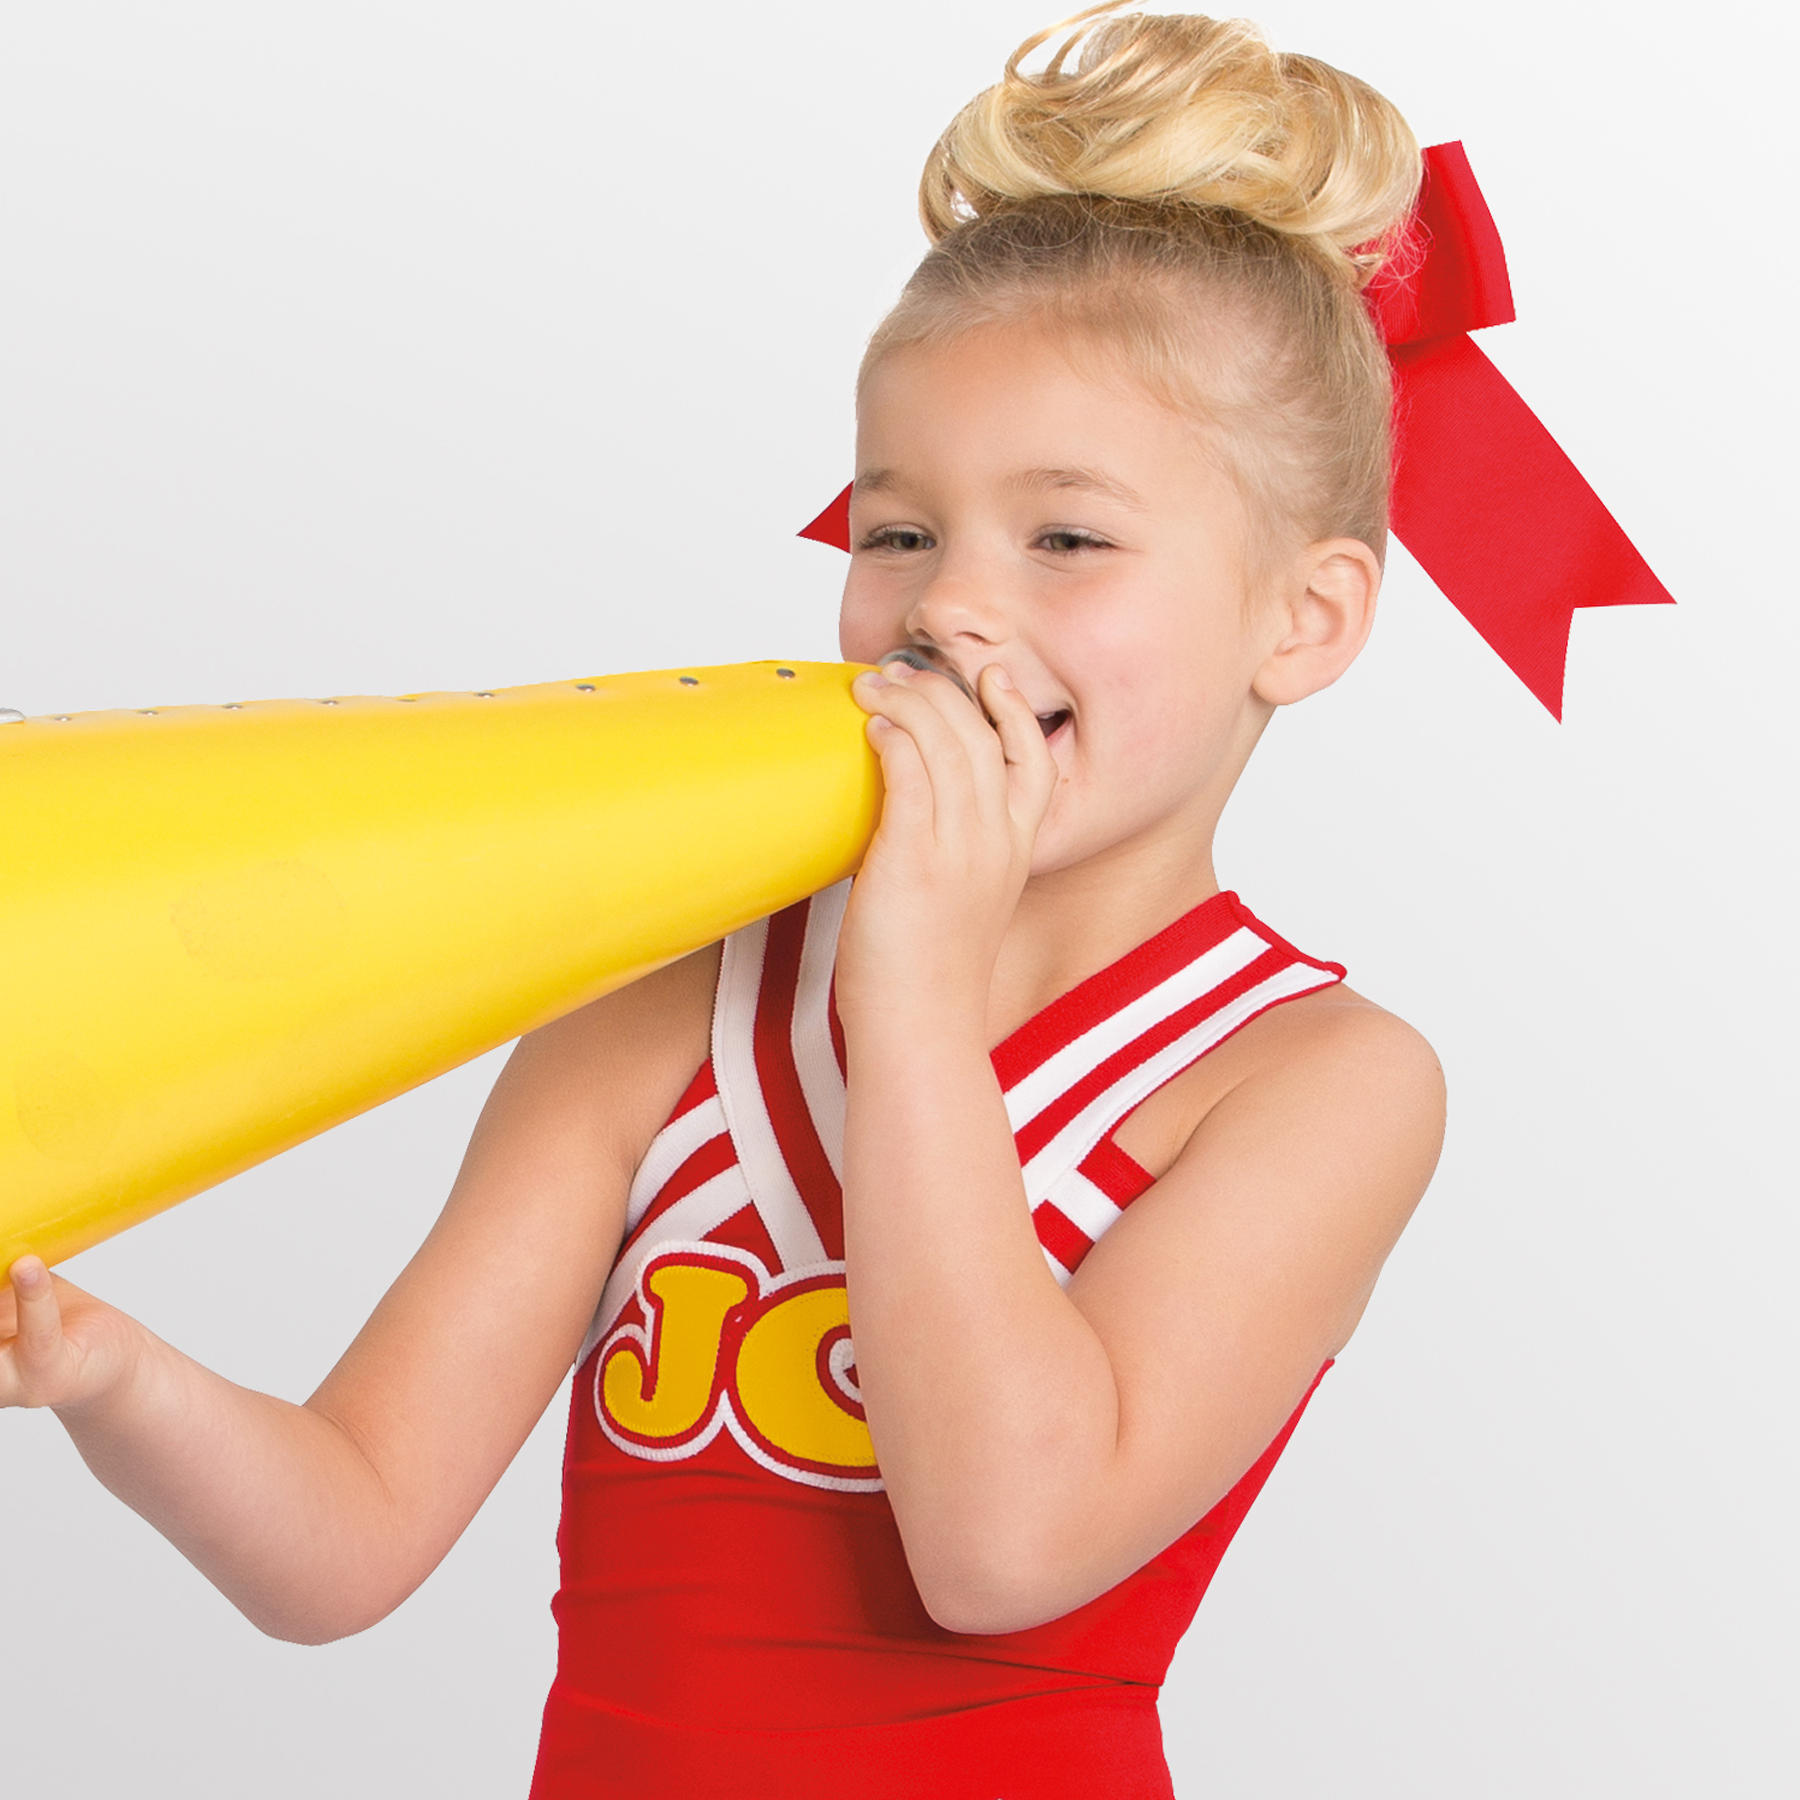 Youth Cheer Uniform.jpg